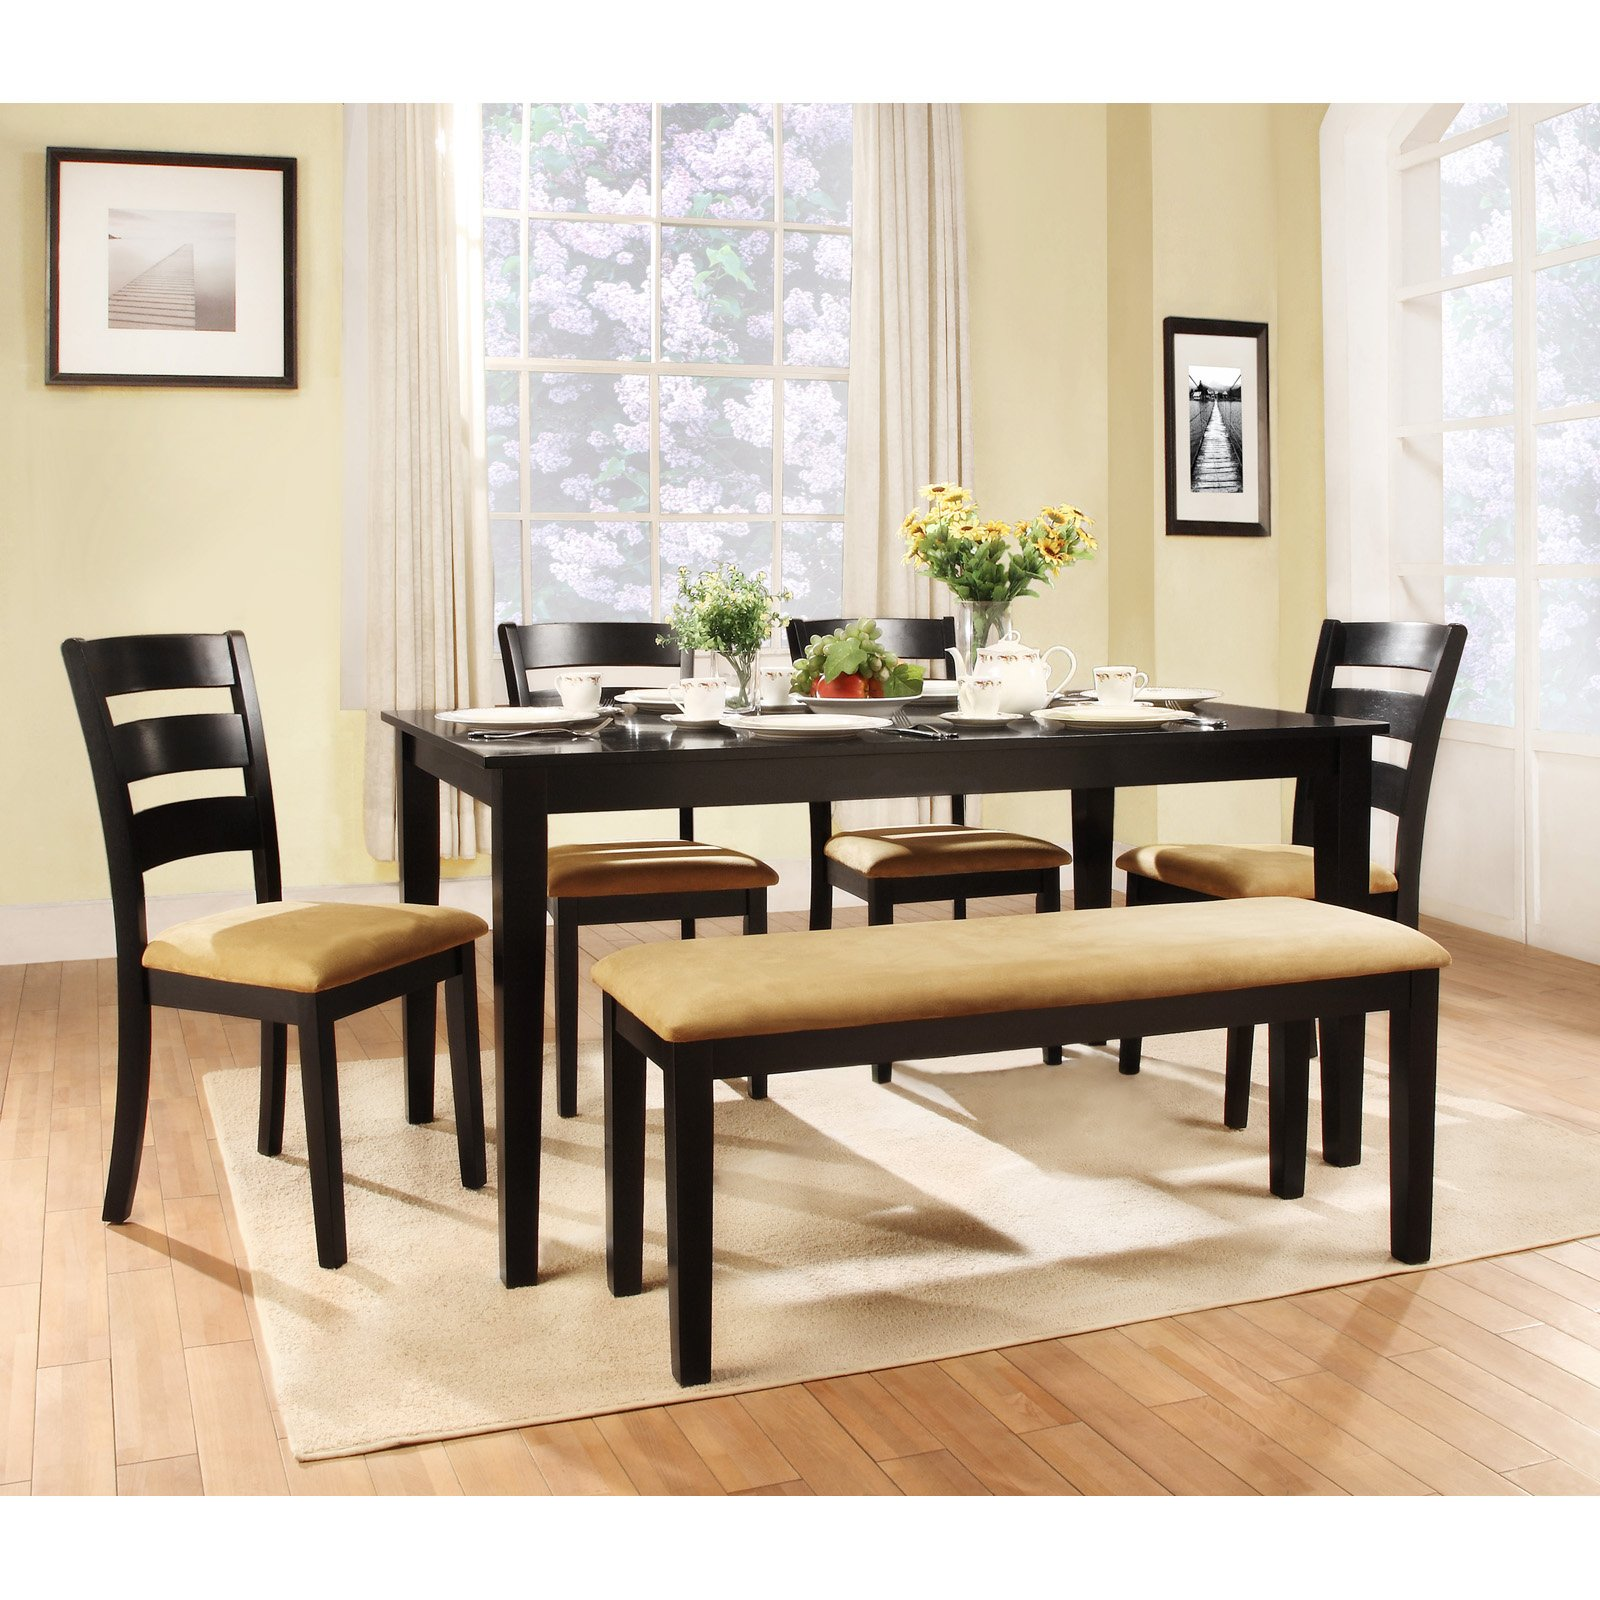 Modern bench style dining table set ideas homesfeed for Dining room furniture benches ideas